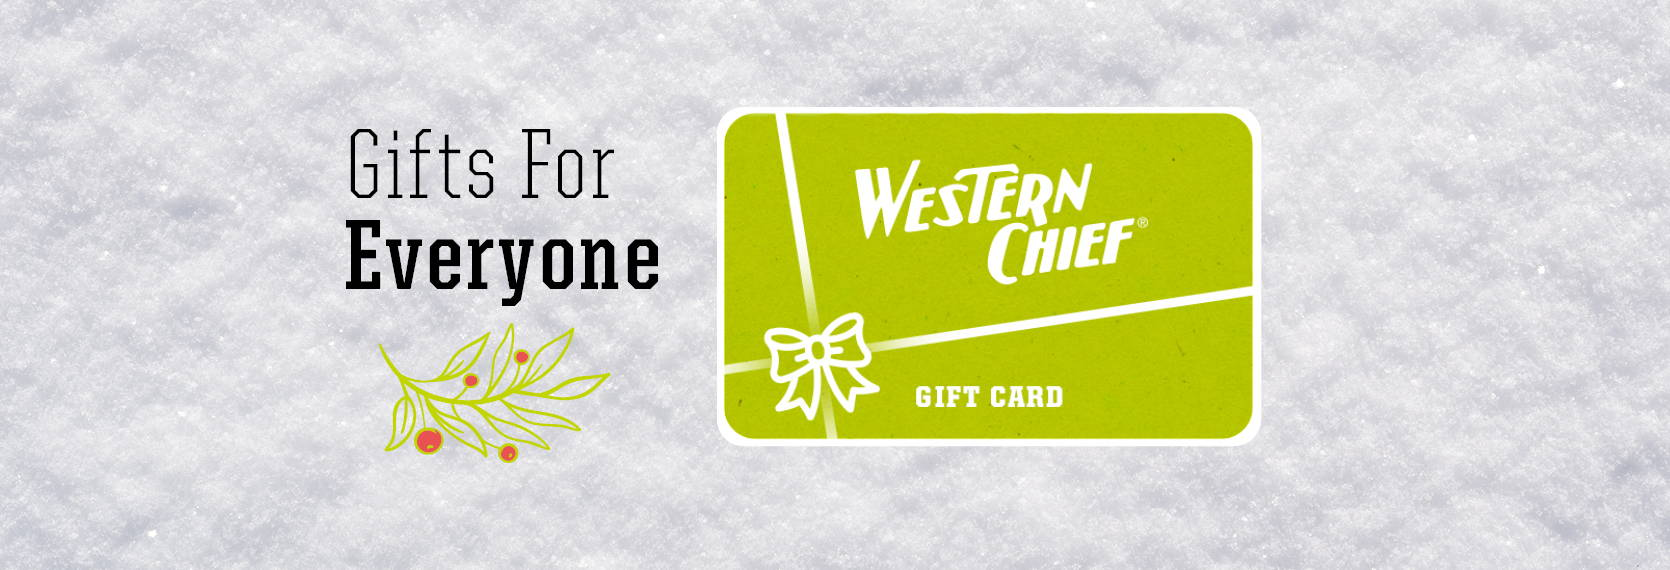 Shop the best holiday gift - a gift card! $25, $50, and $100 gift cards available.